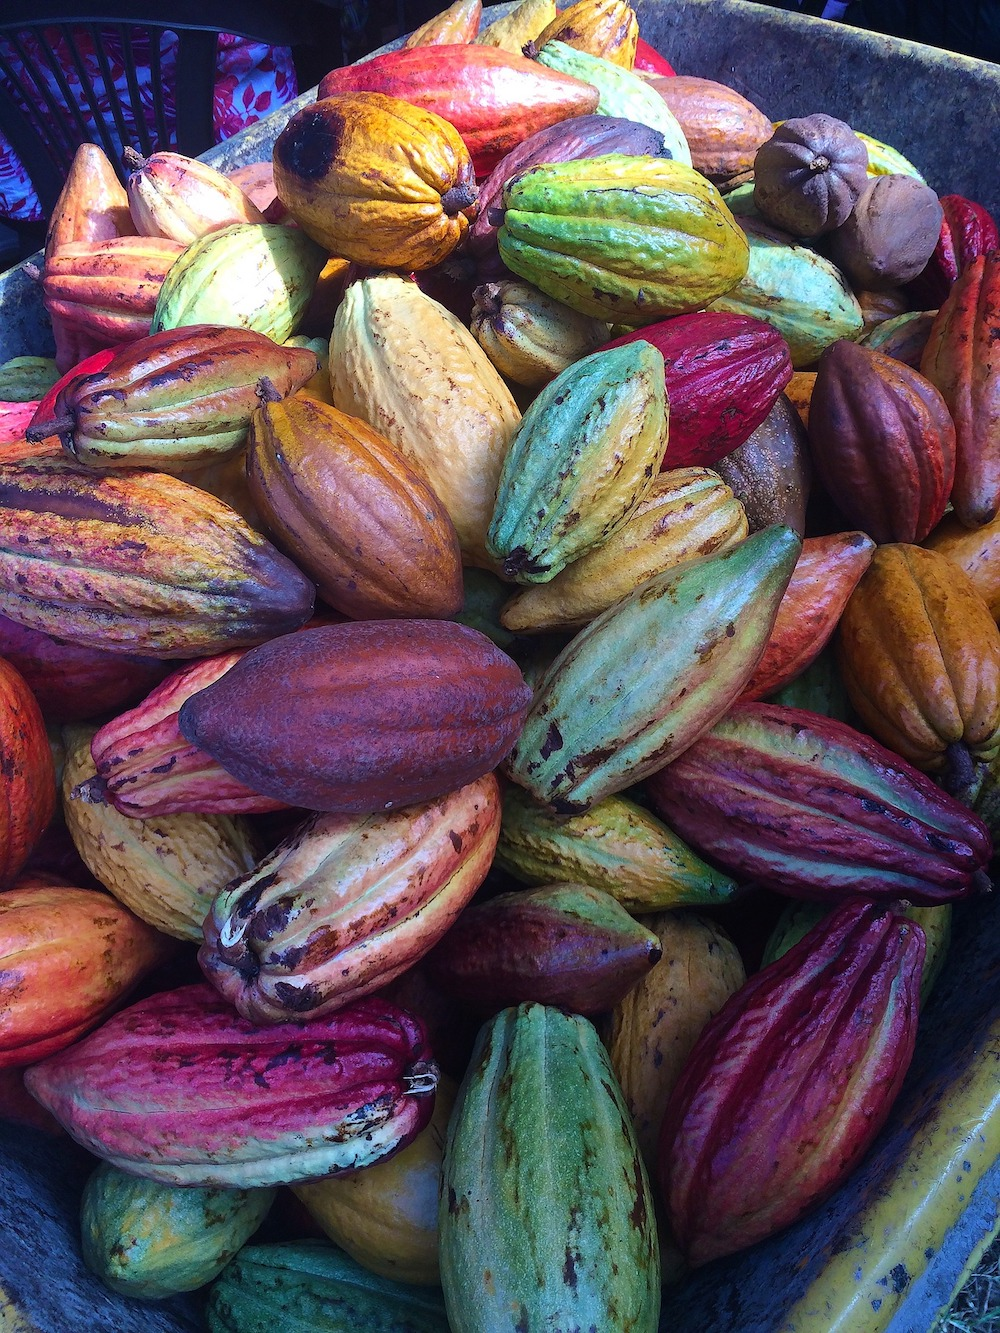 Chocolate, like love and truth, is multiple, says Sethi, about the diverse types of chocolate